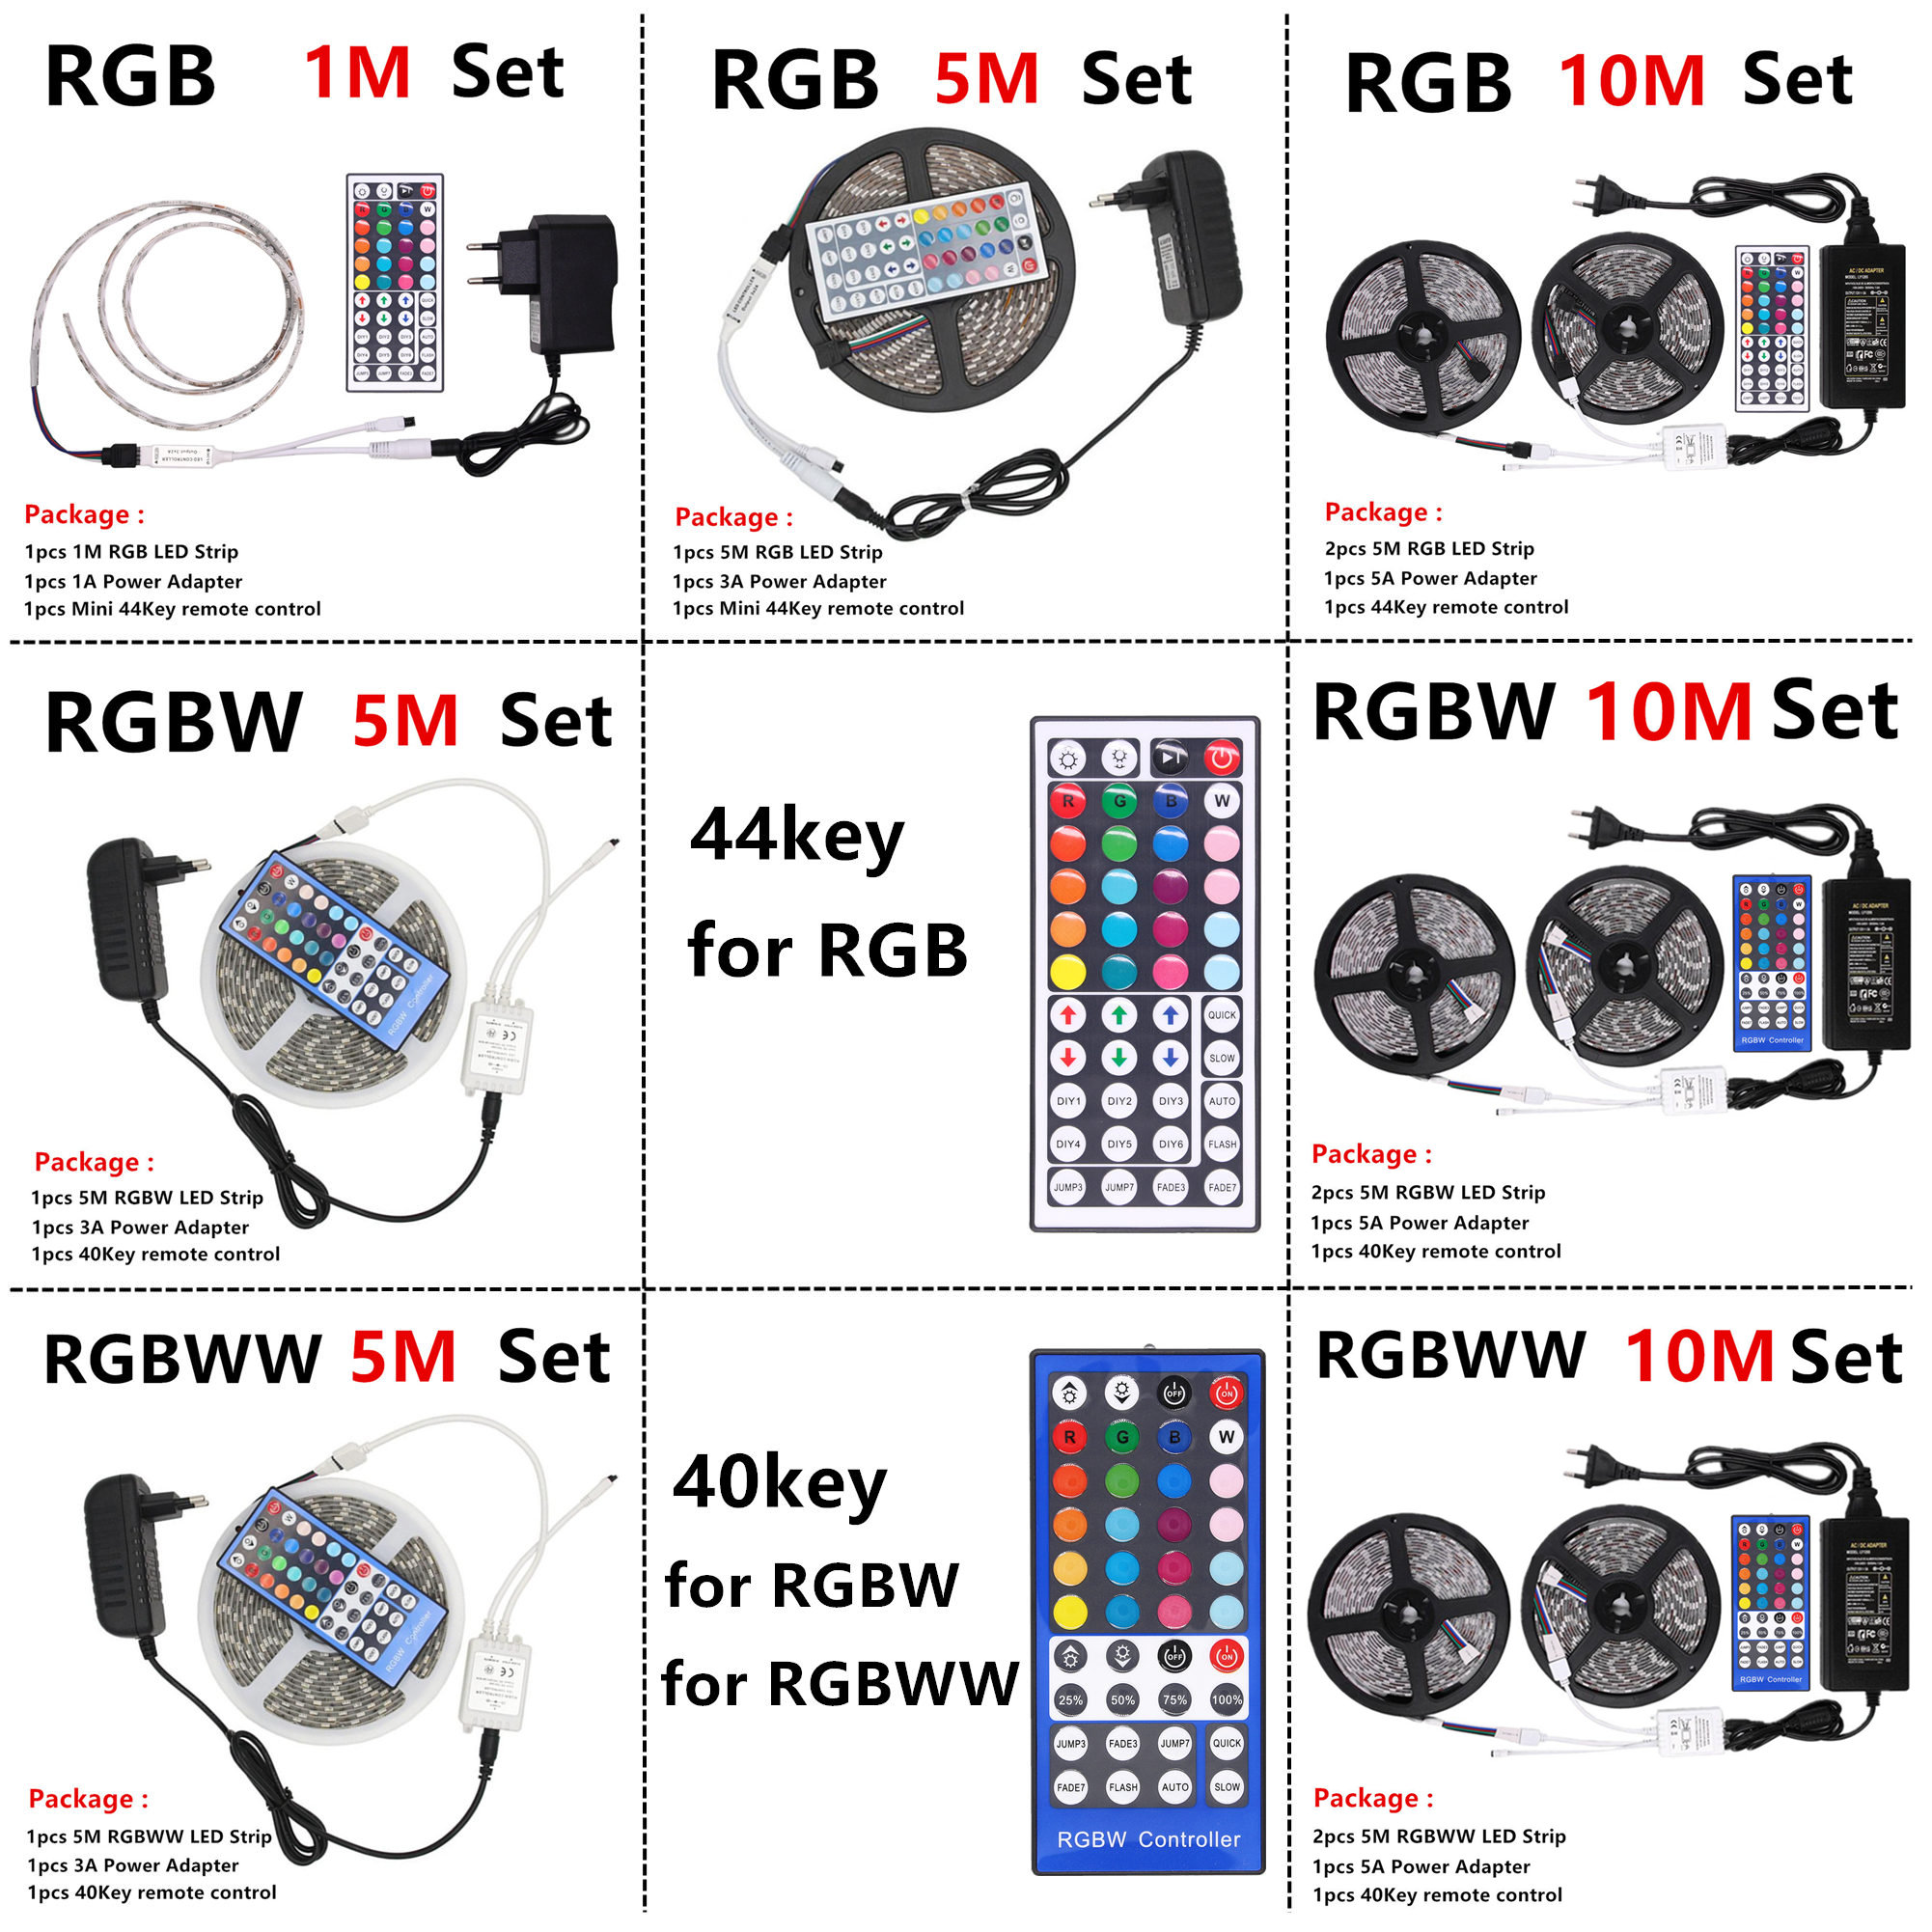 5050 RGB LED Strip Waterproof DC 12V 5M RGBW RGBWW LED Strips Light Flexible with 3A Power and Remote Control